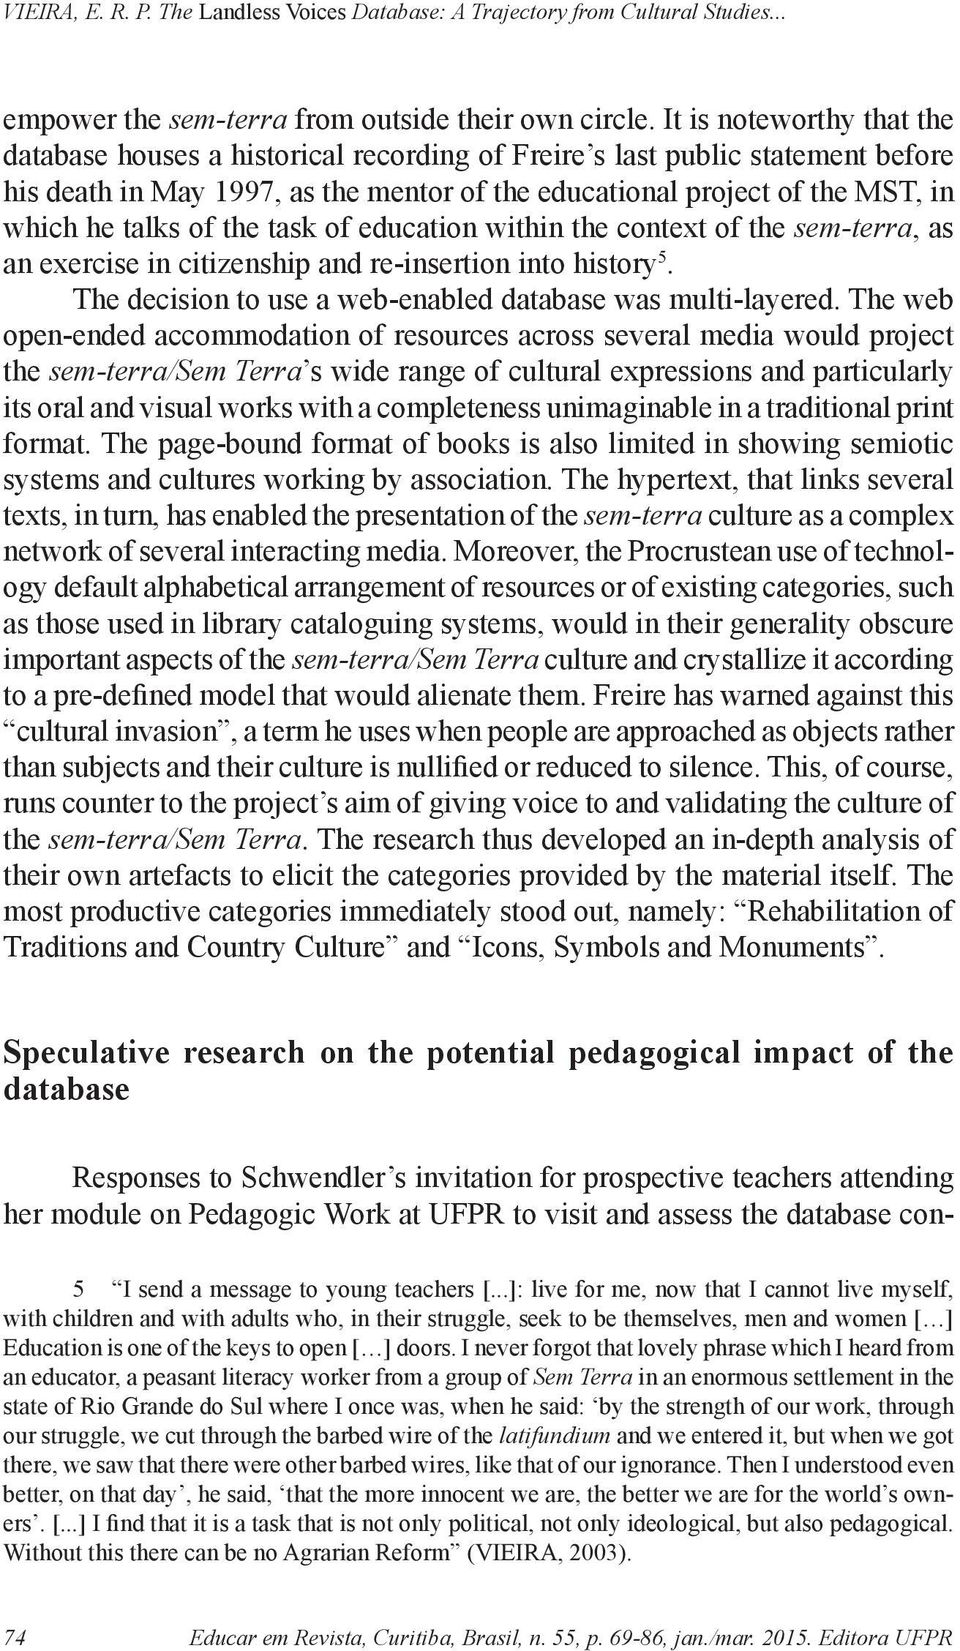 of the task of education within the context of the sem-terra, as an exercise in citizenship and re-insertion into history 5. The decision to use a web-enabled database was multi-layered.